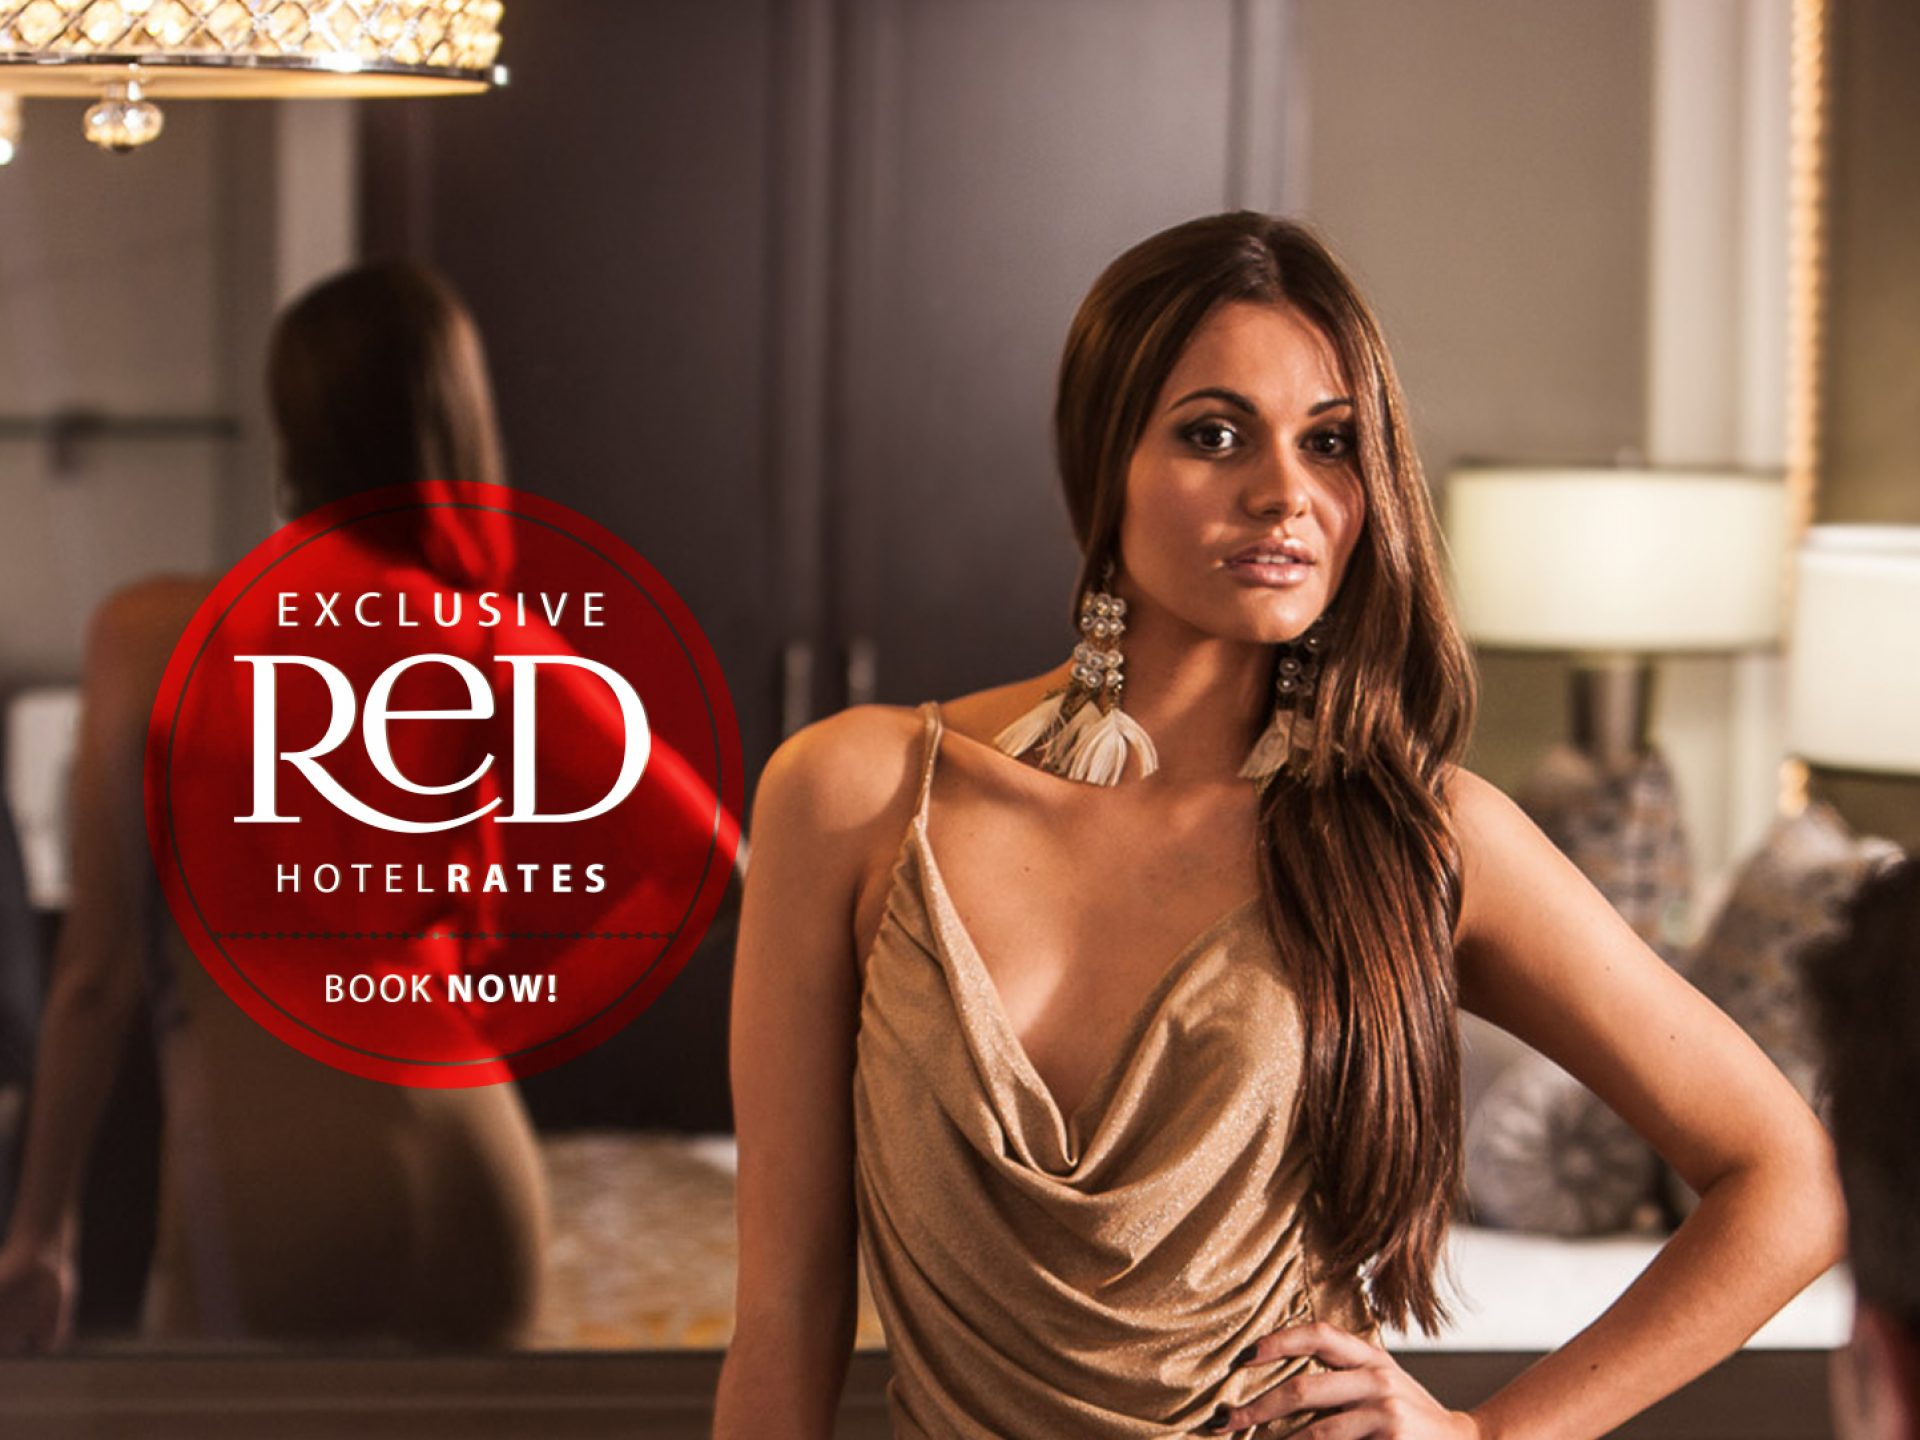 Red Hotel Rates